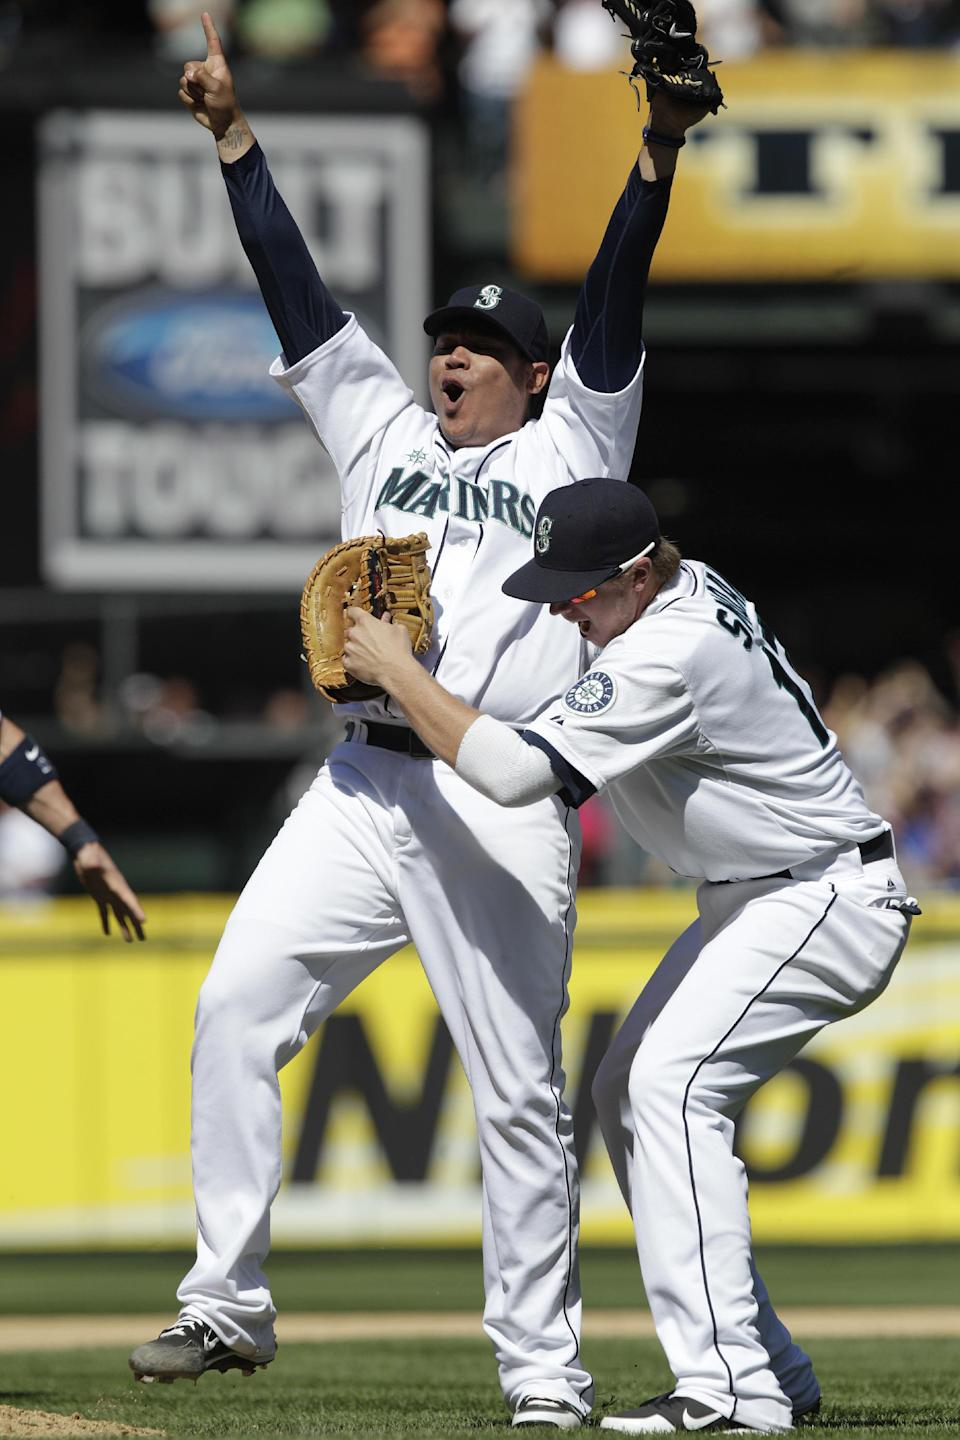 Seattle Mariners pitcher Felix Hernandez is congratulated by teammate Justin Smoak, right, after throwing a perfect game to end the ninth inning of baseball game against the Tampa Bay Rays, Wednesday, Aug. 15, 2012, in Seattle. The Mariners won 1-0. (AP Photo/Ted S. Warren)